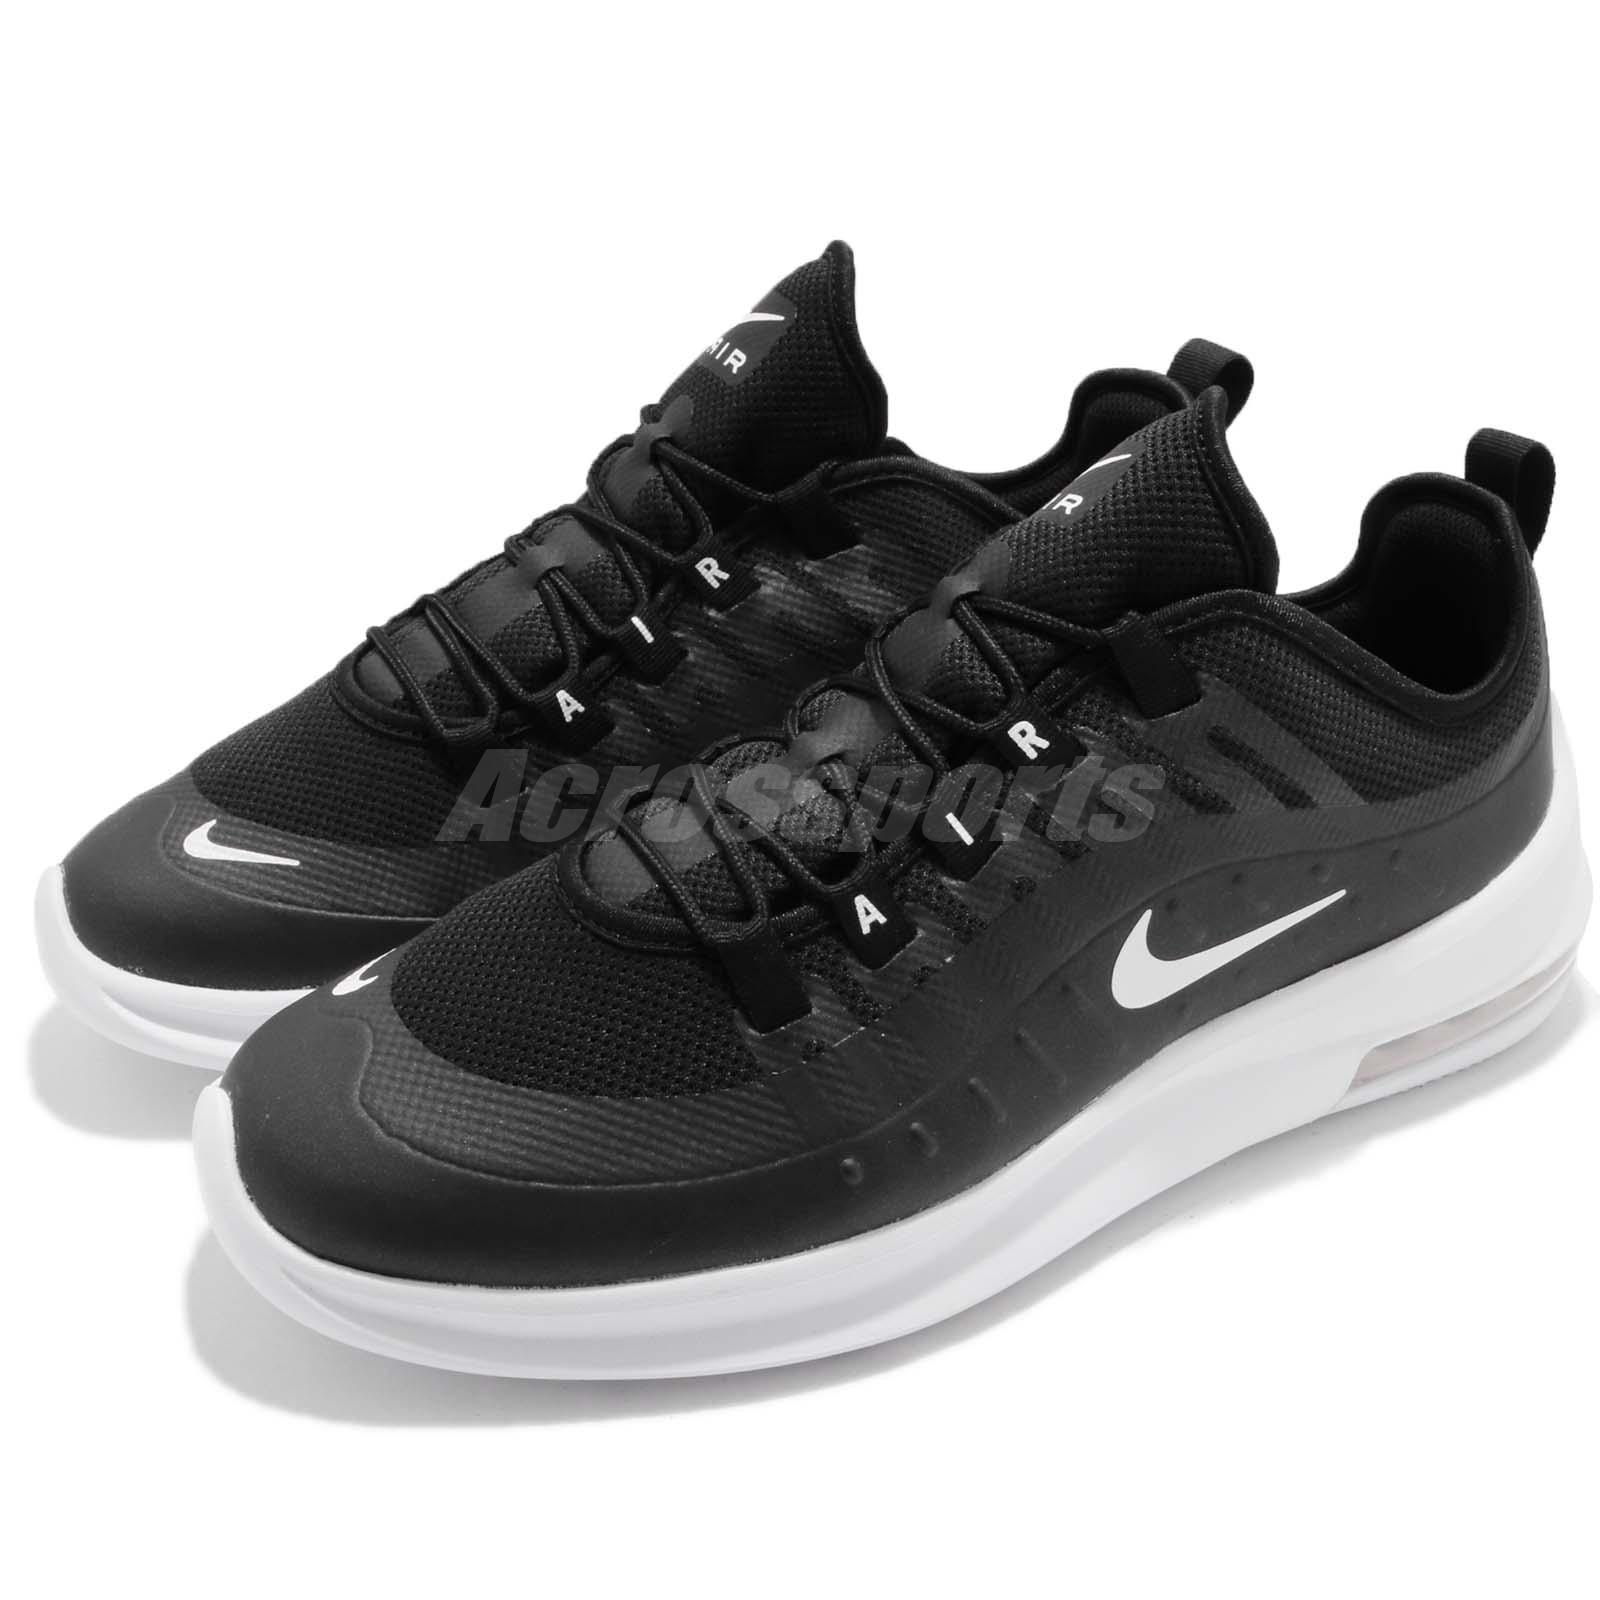 d840541c34 Details about Nike Air Max Axis Black White Men Running Casual Shoes  Sneakers AA2146-003